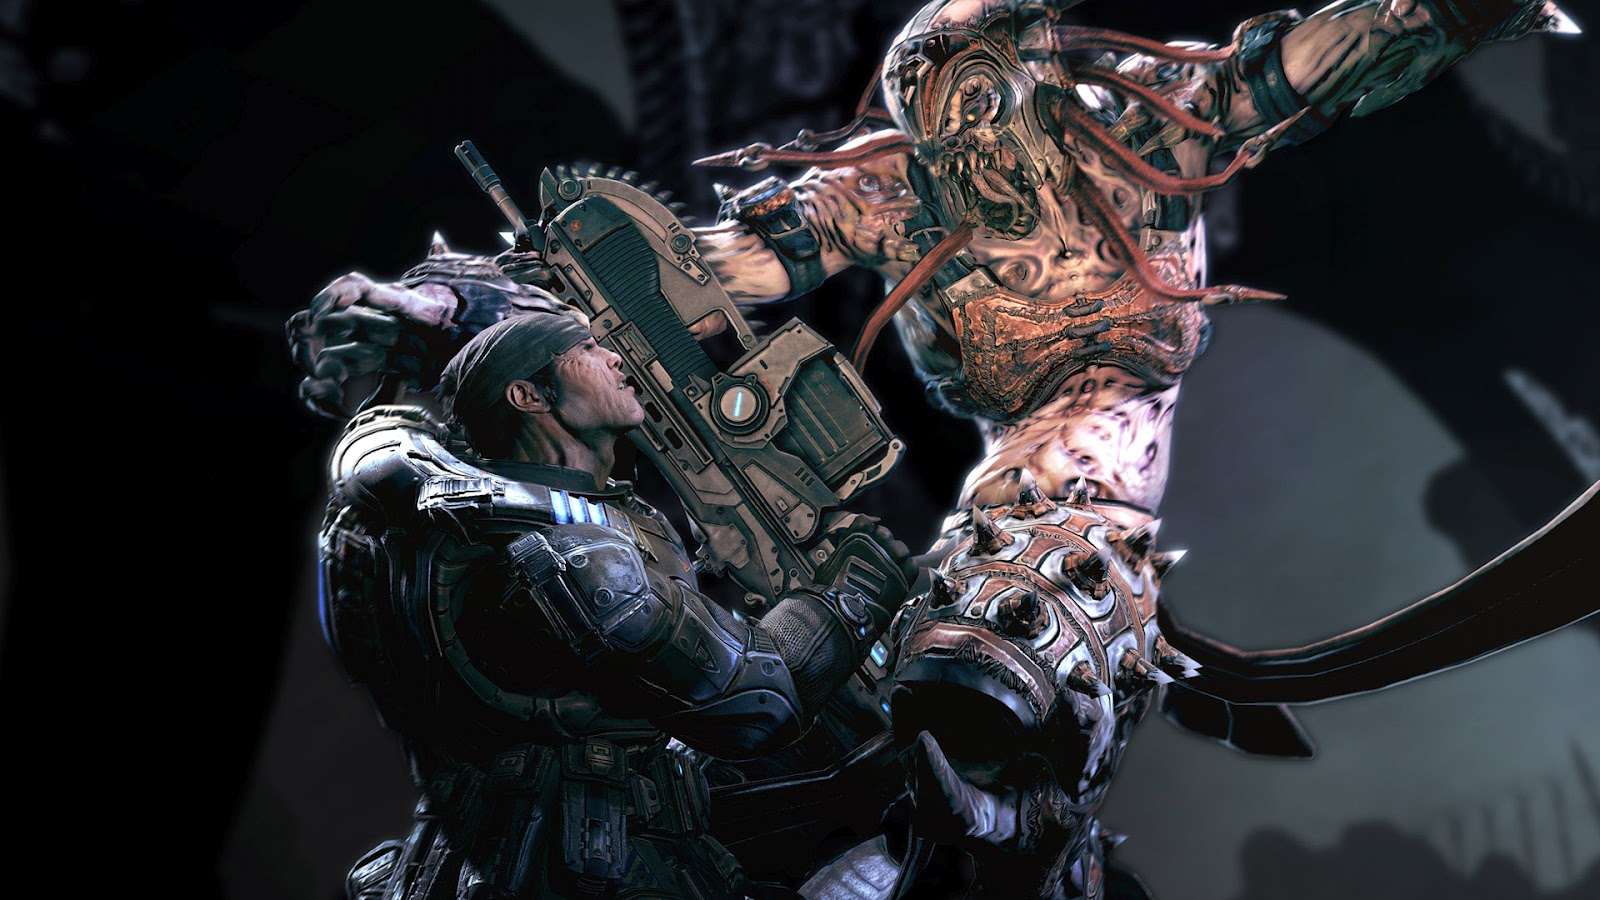 Monsters and demons wallpapers 3d monsters wallpapers free wallpapers download - Gears of war carmine wallpaper ...